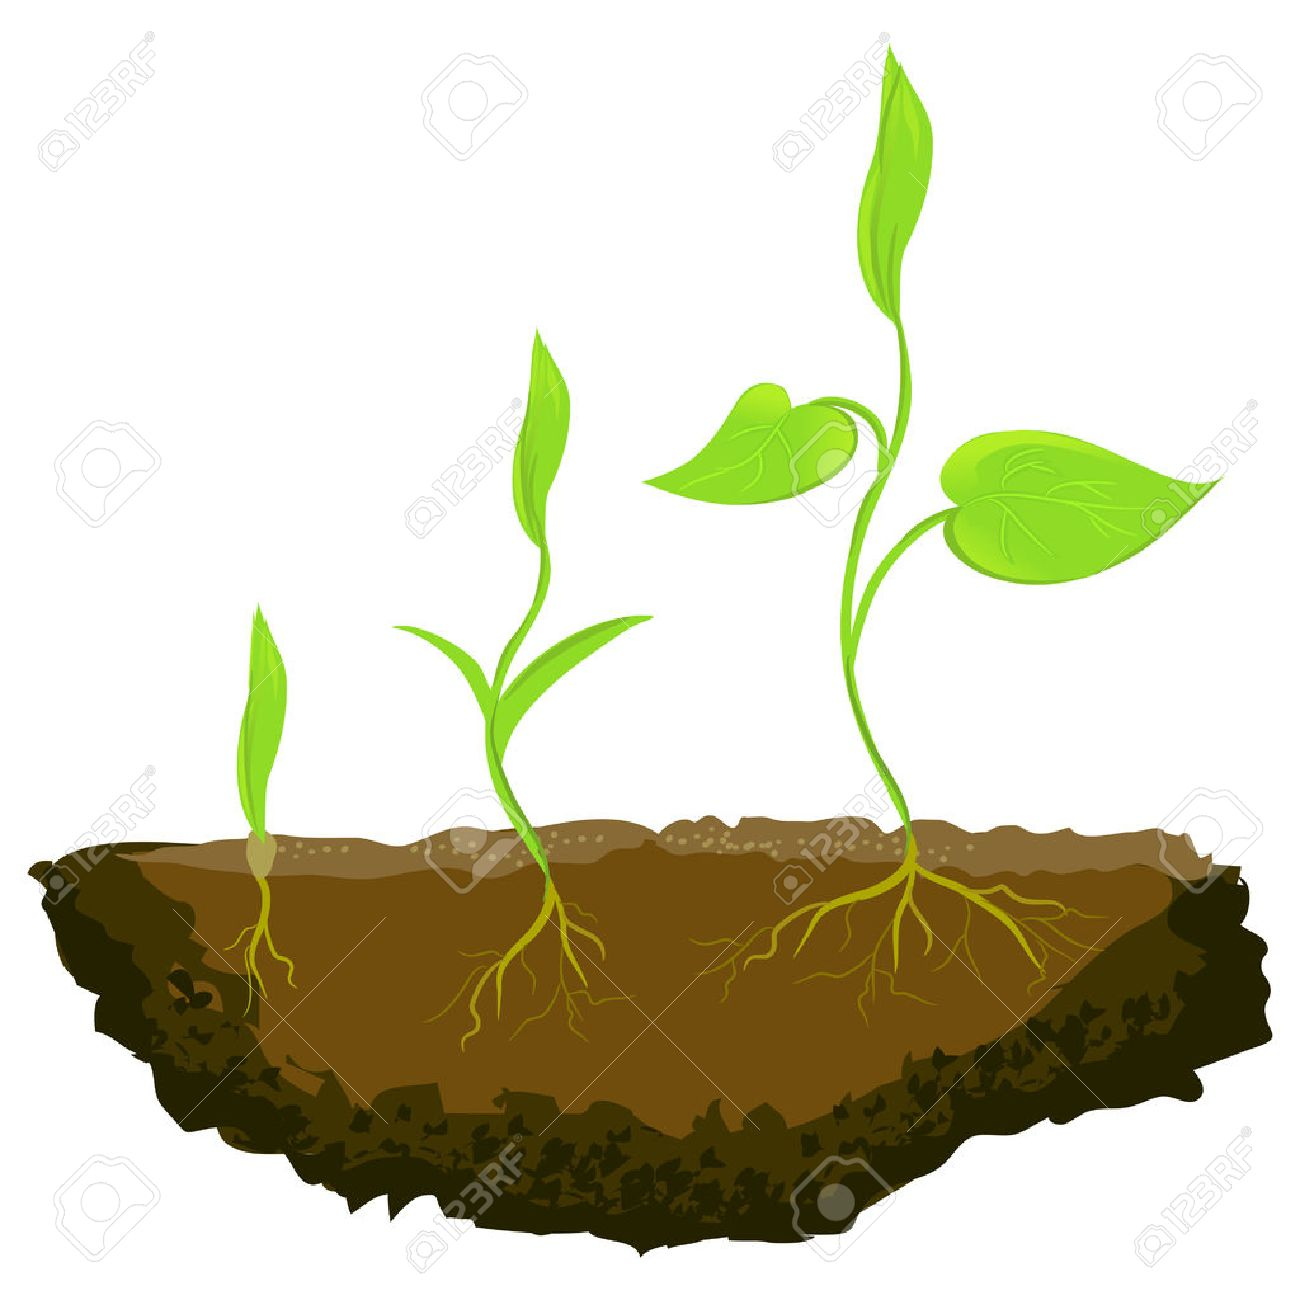 Plant illustration. Growing clipart free download